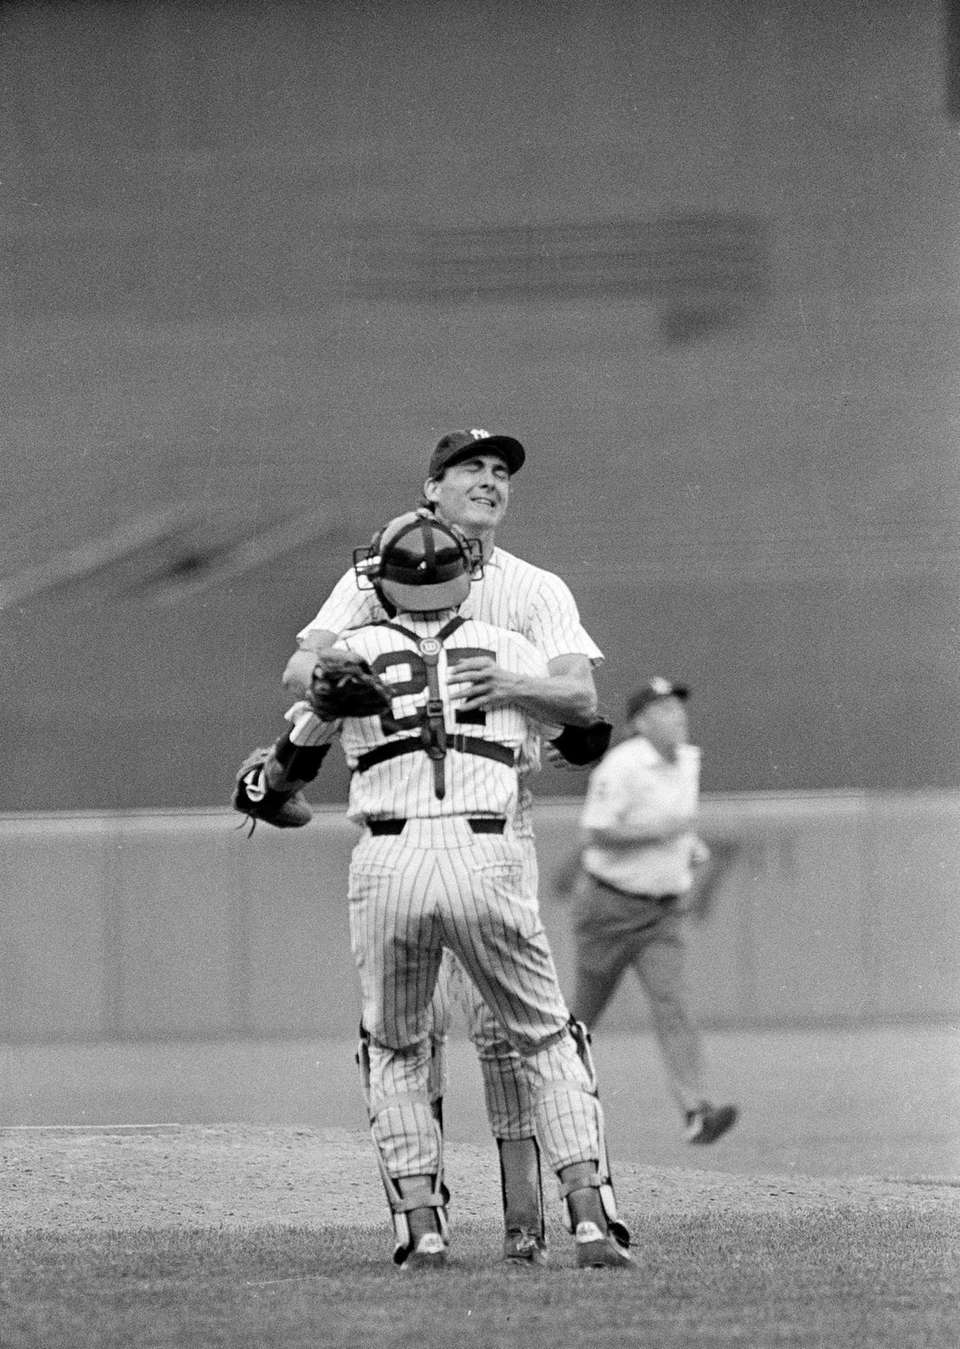 New York Yankees pitcher Dave Righetti jumps into